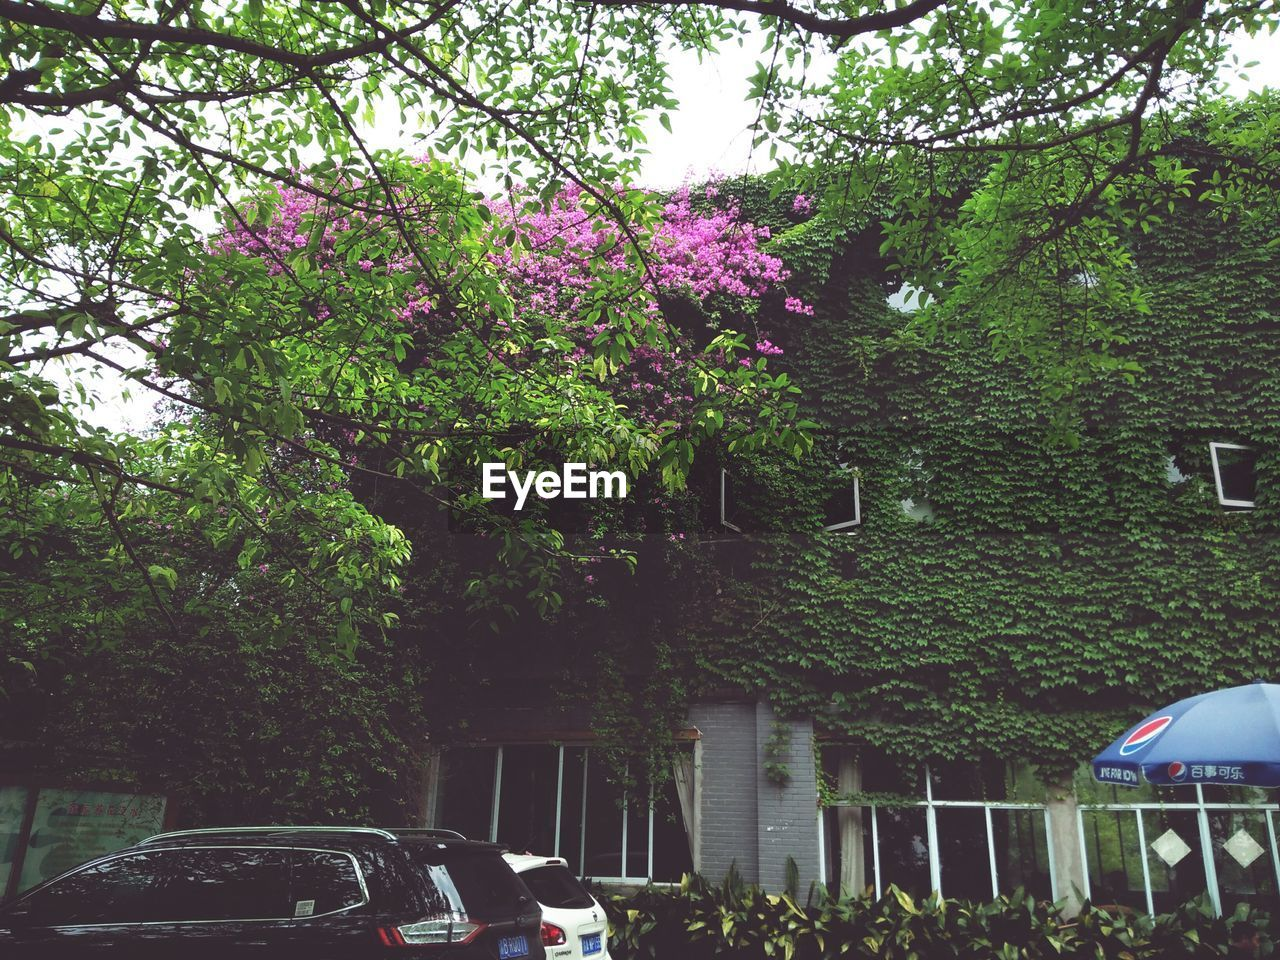 tree, car, growth, outdoors, nature, land vehicle, day, transportation, real people, green color, men, branch, beauty in nature, women, built structure, flower, building exterior, architecture, people